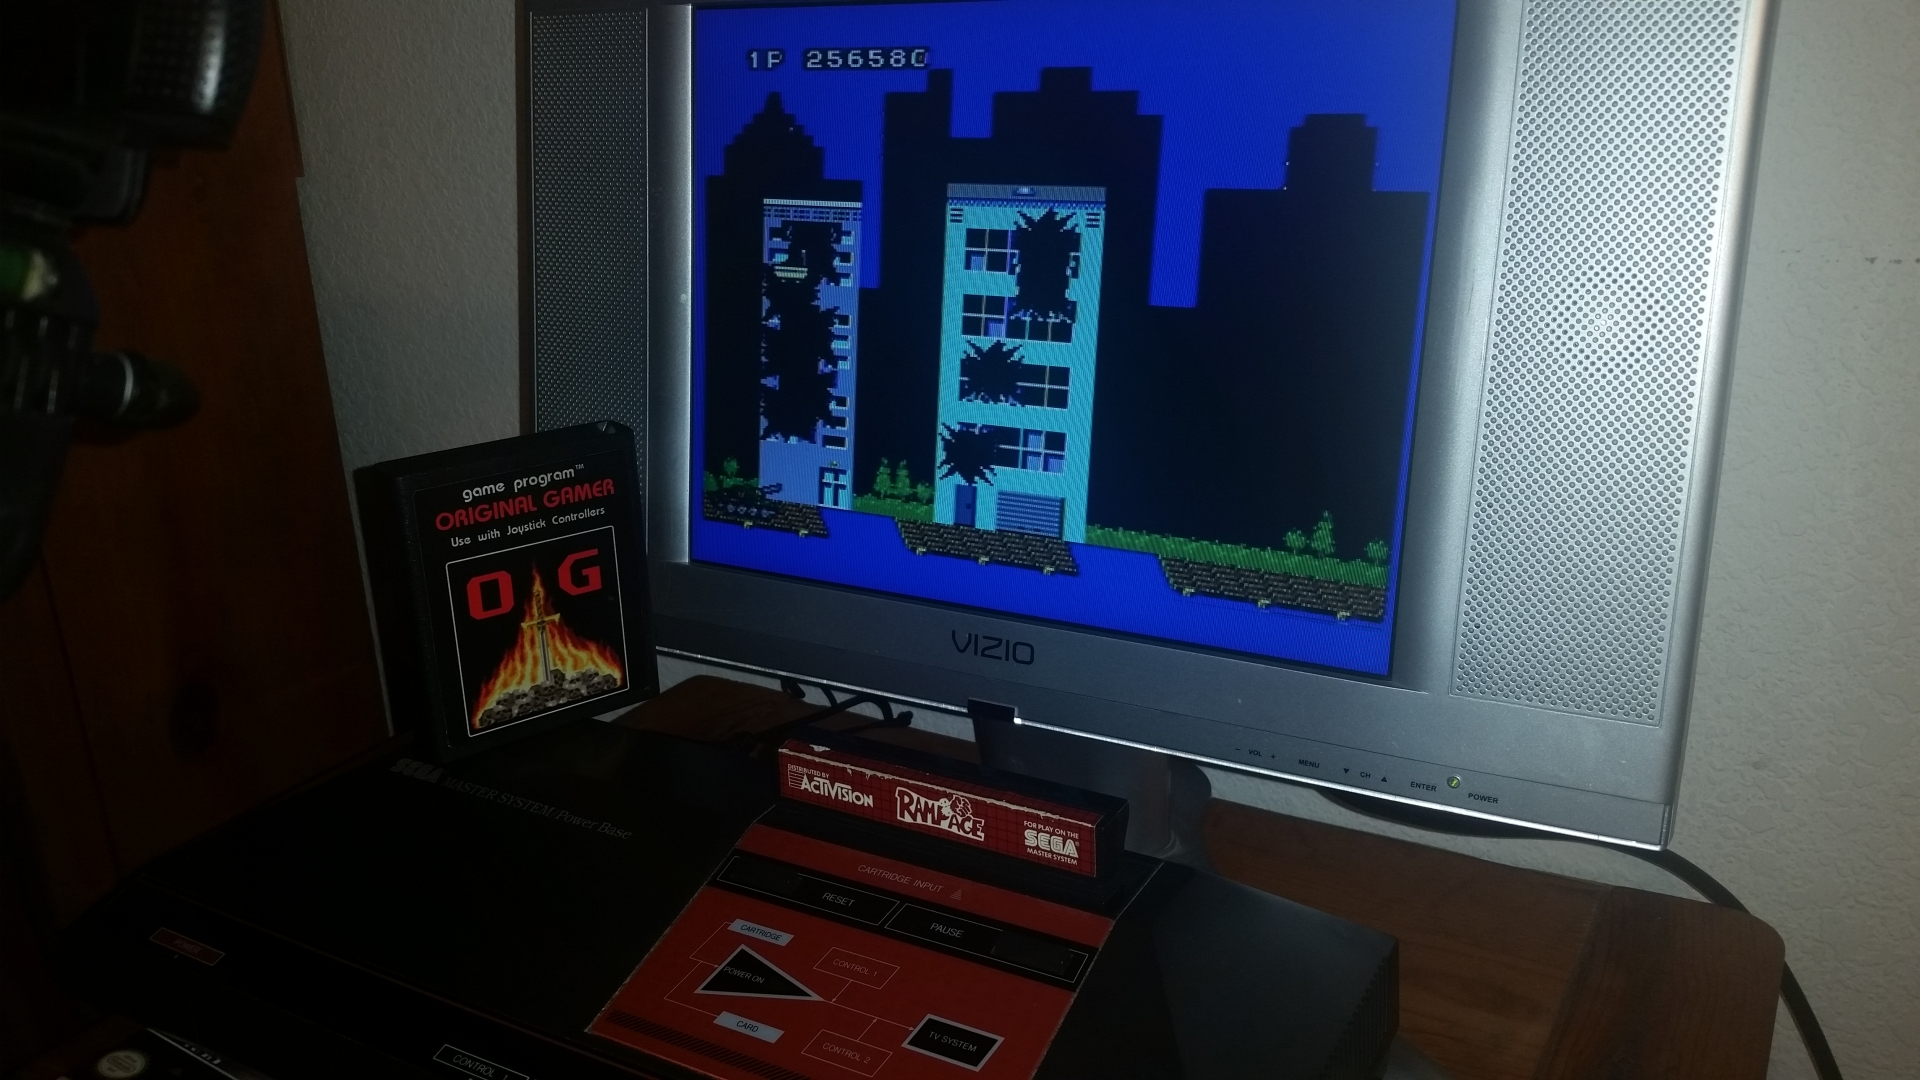 OriginalGamer: Rampage (Sega Master System) 256,580 points on 2016-11-17 23:38:31